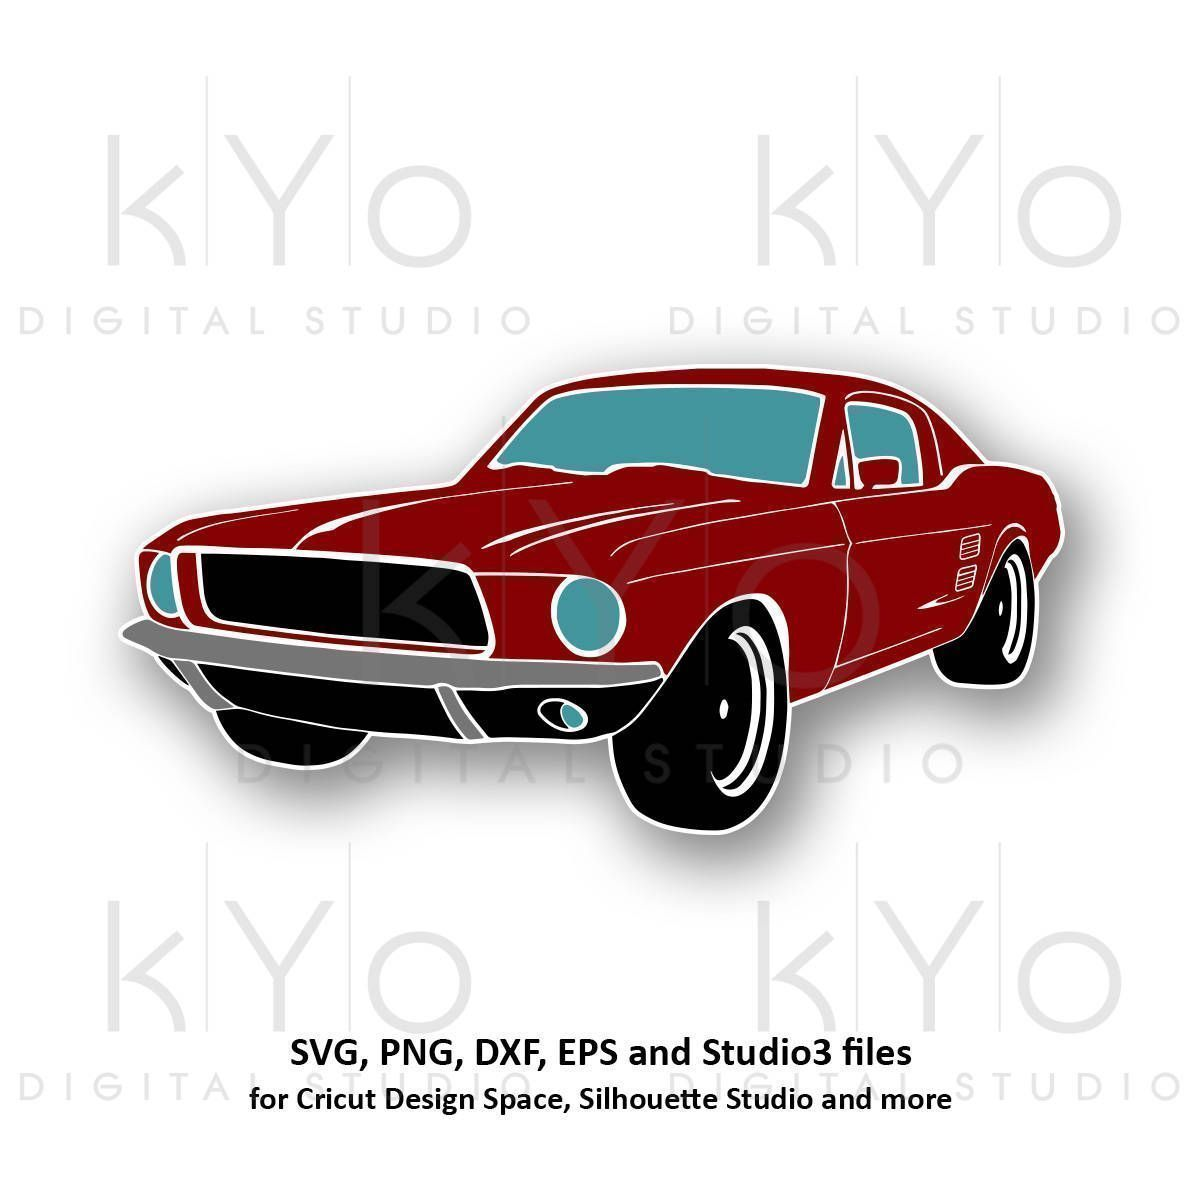 Classic Ford Mustang Svg Png Mustang Car Silhouette Svg Mustang Clipart Muscle Car Svg Files For Cricut Silhouette Car Silhouette Mustang Cars Ford Mustang Car